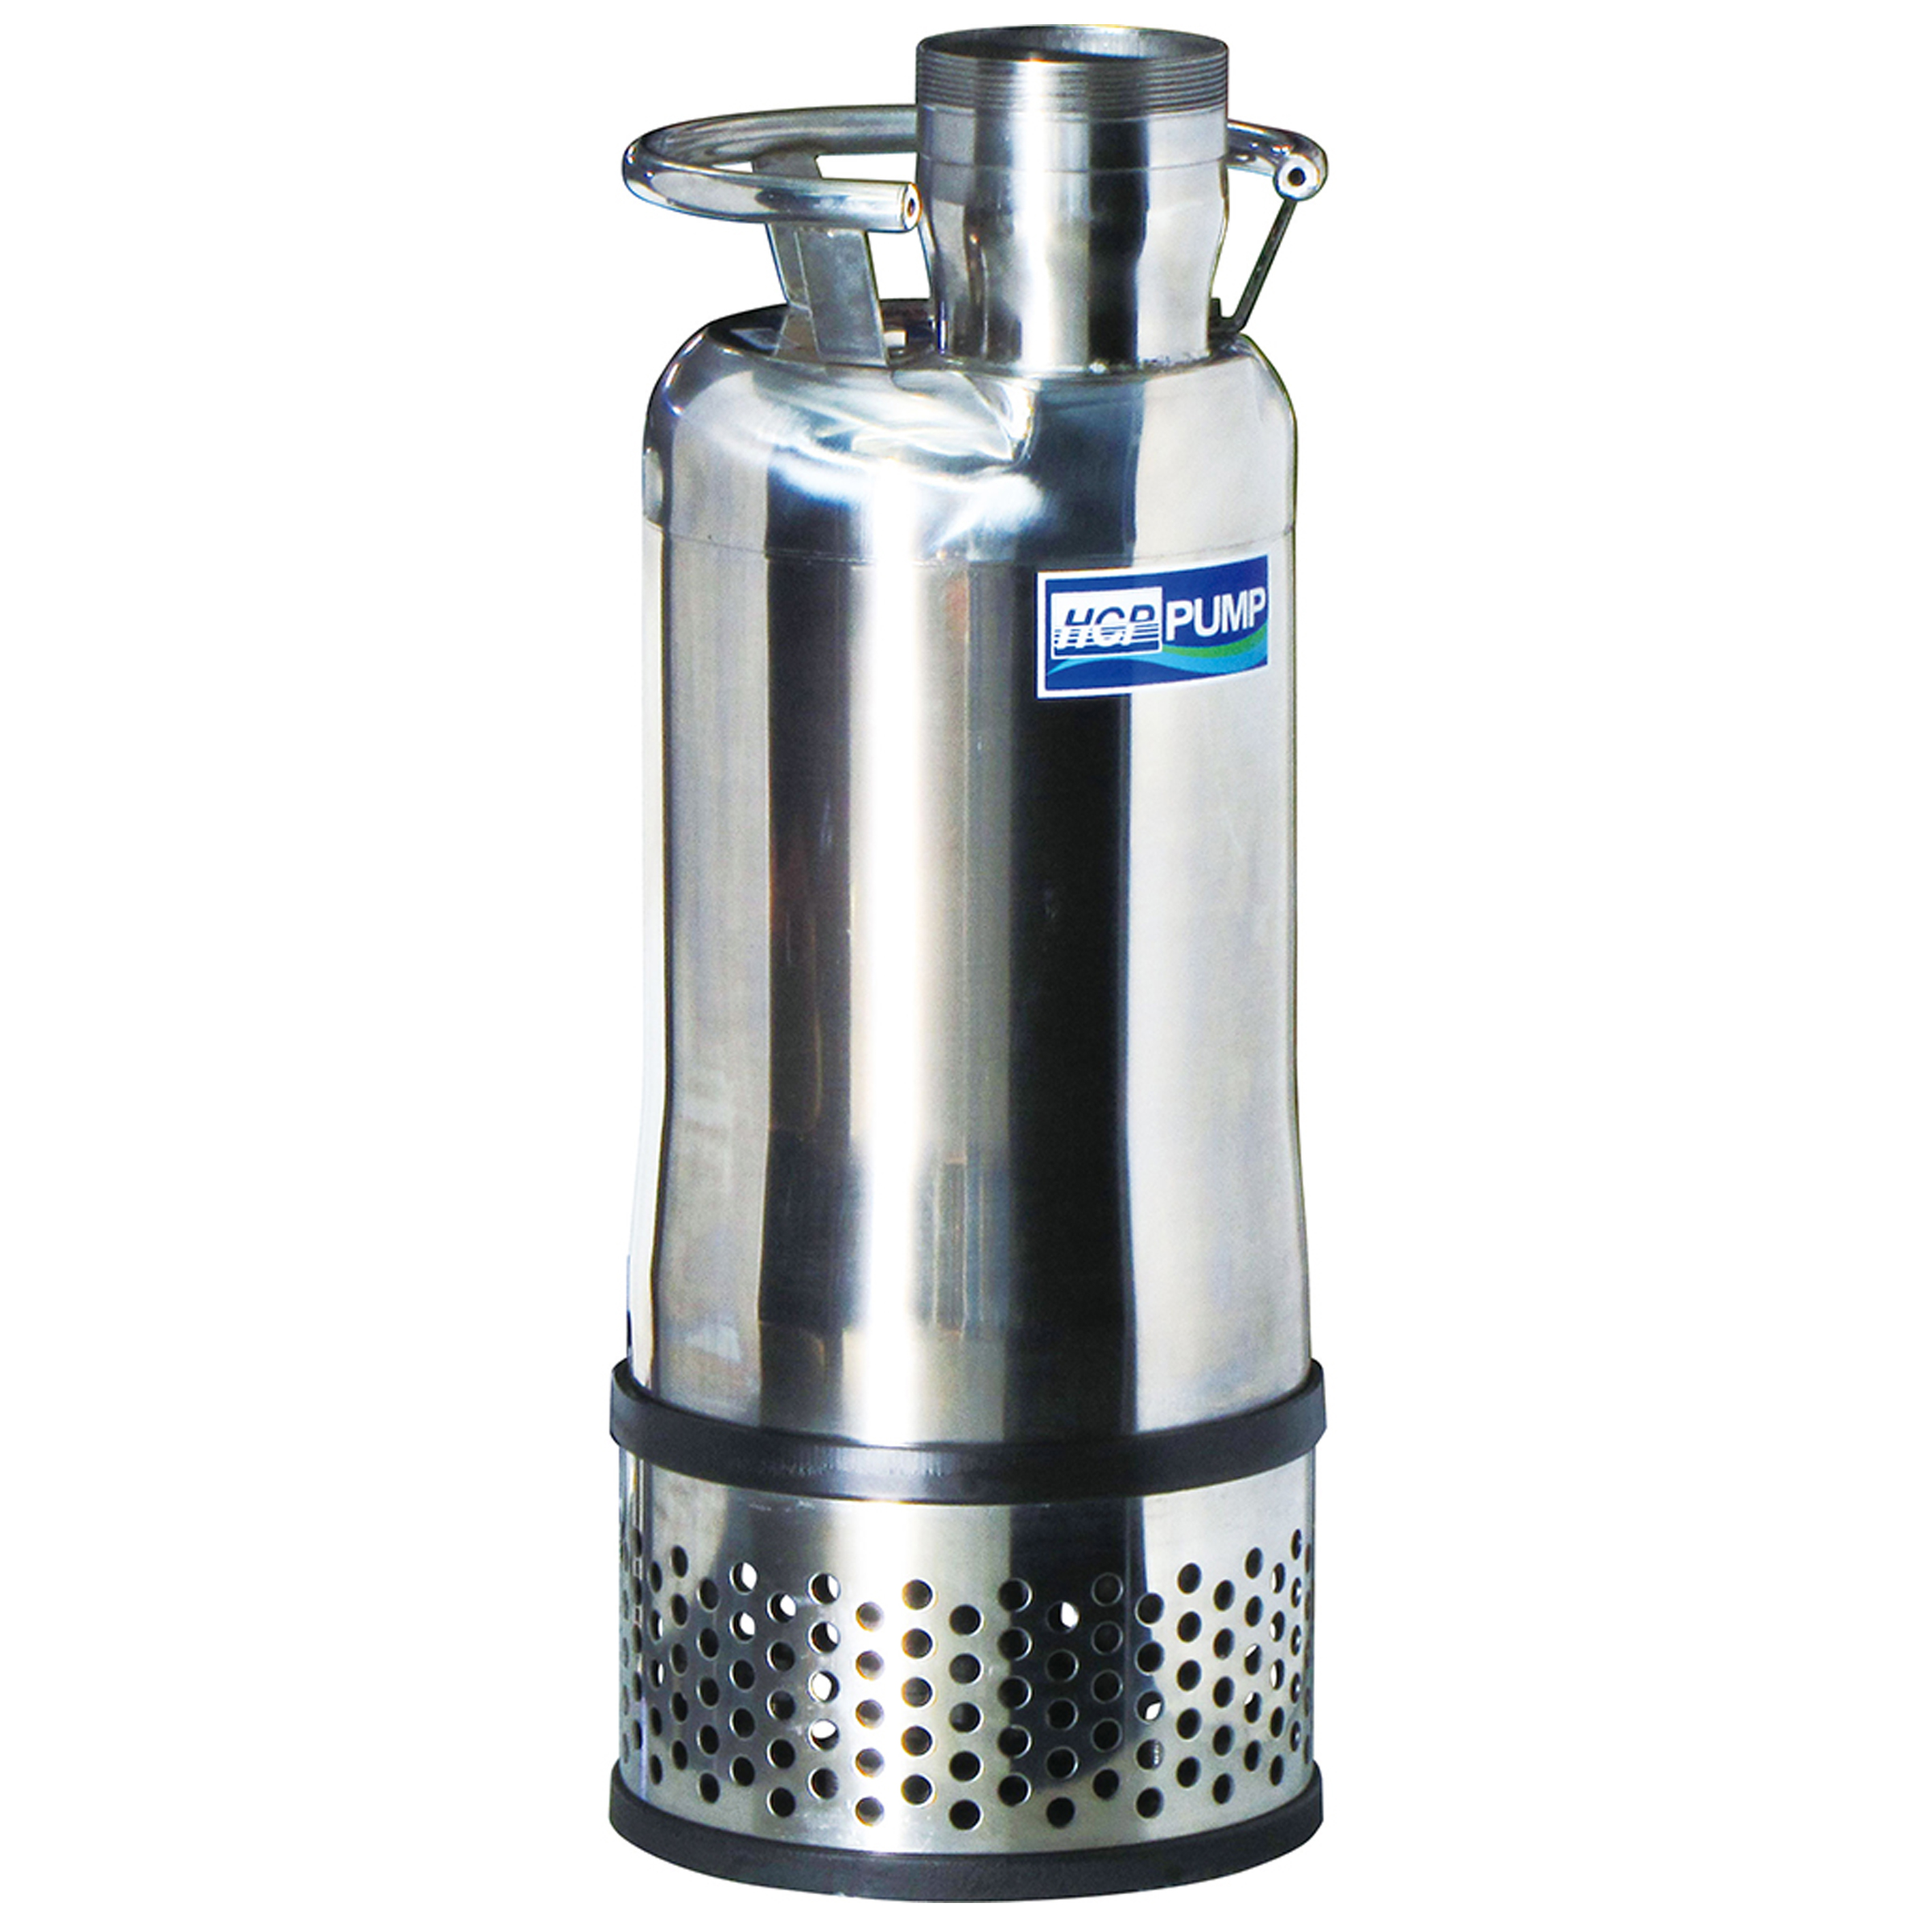 Submersible Pump Installation And Repairs